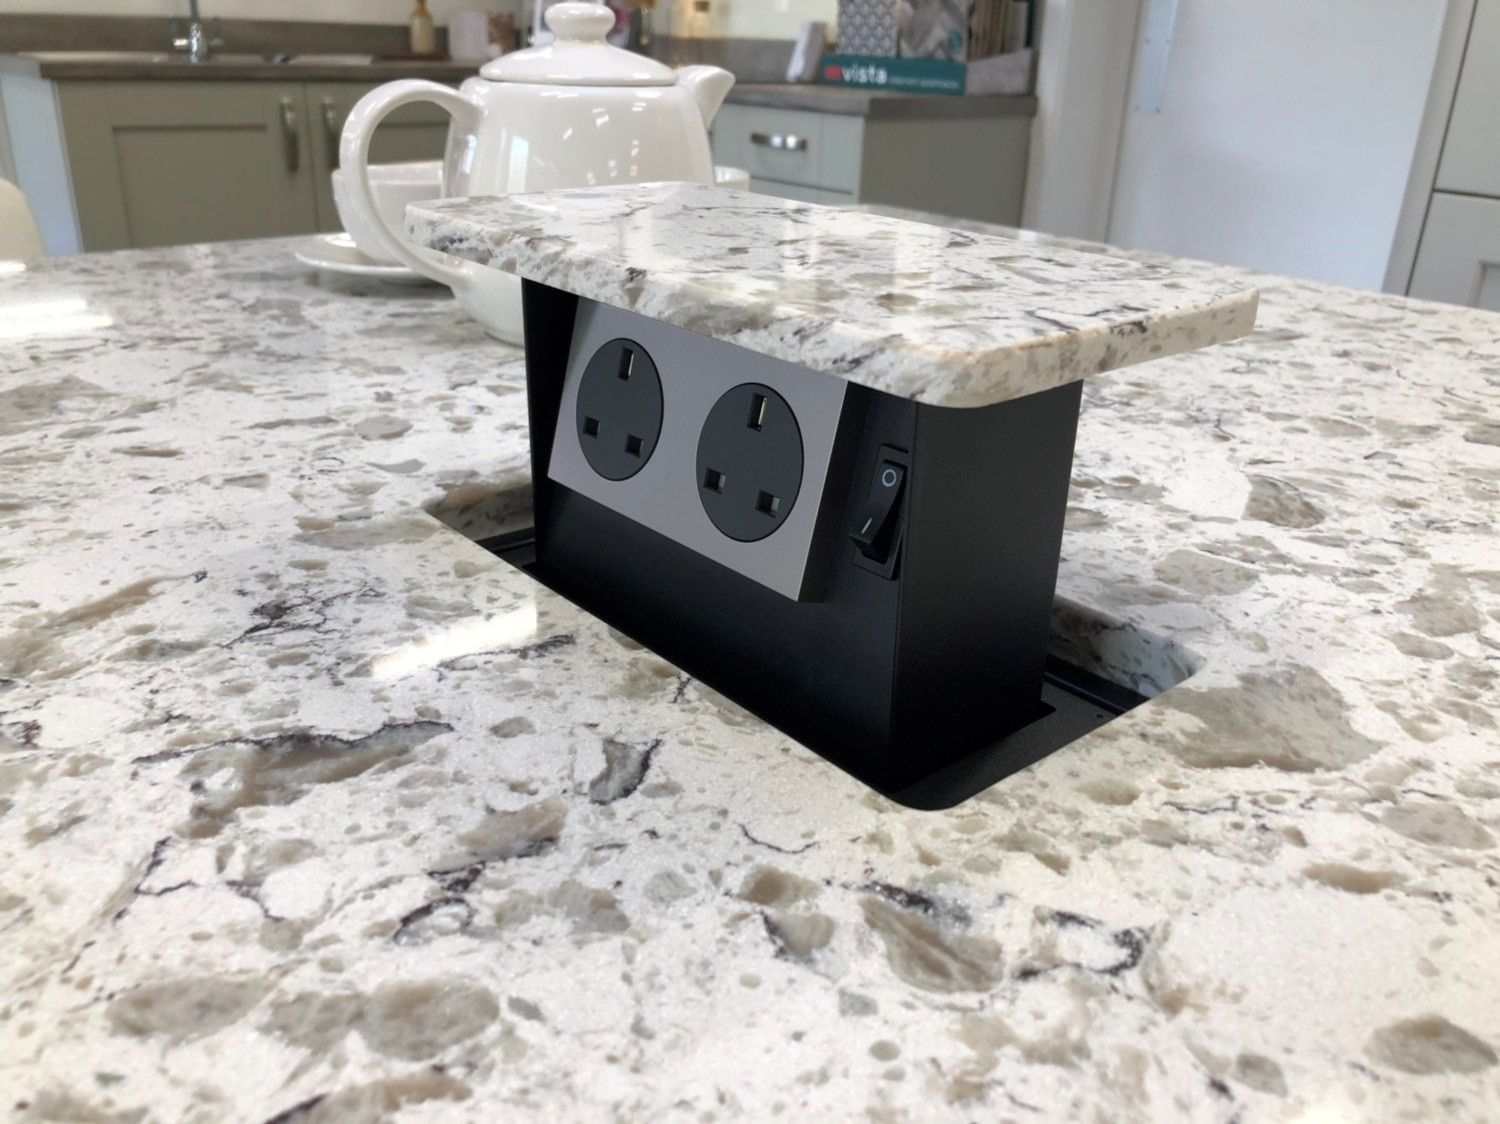 A Set Of Handy Hidden Plug Sockets In The Counter Top Of This